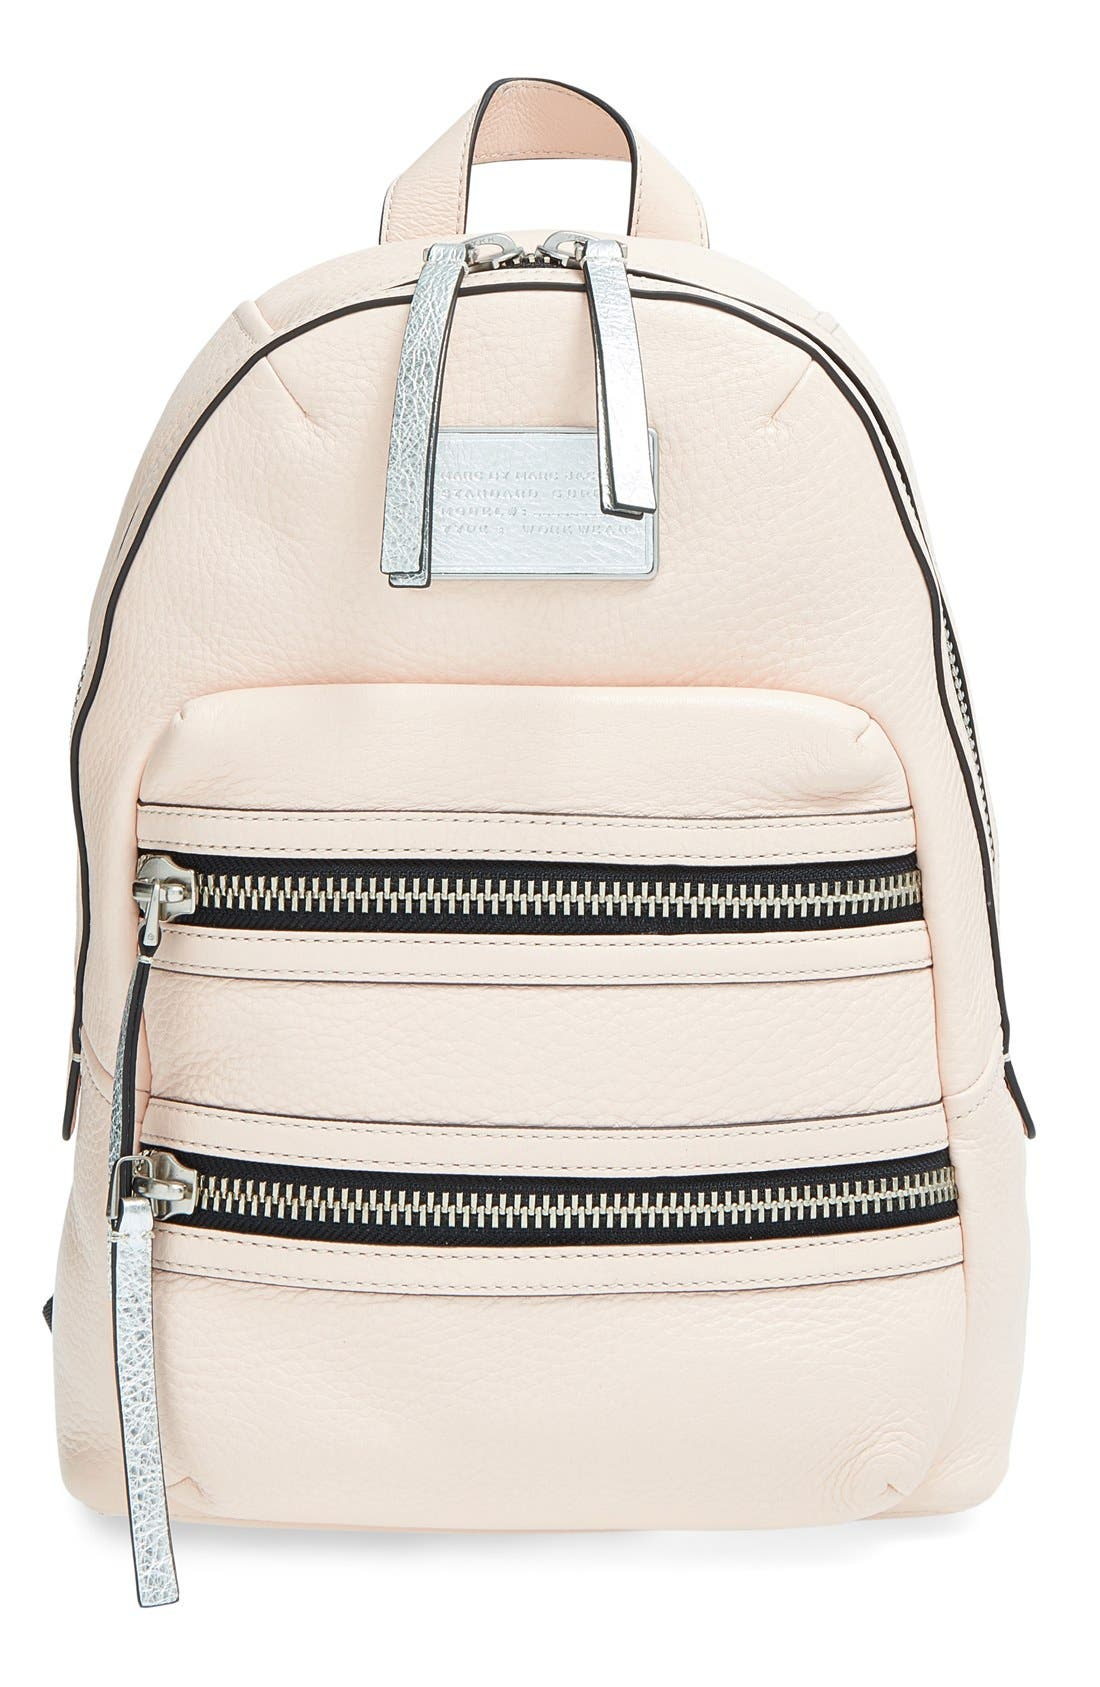 Main Image - MARC BY MARC JACOBS 'Domo Biker' Leather Backpack